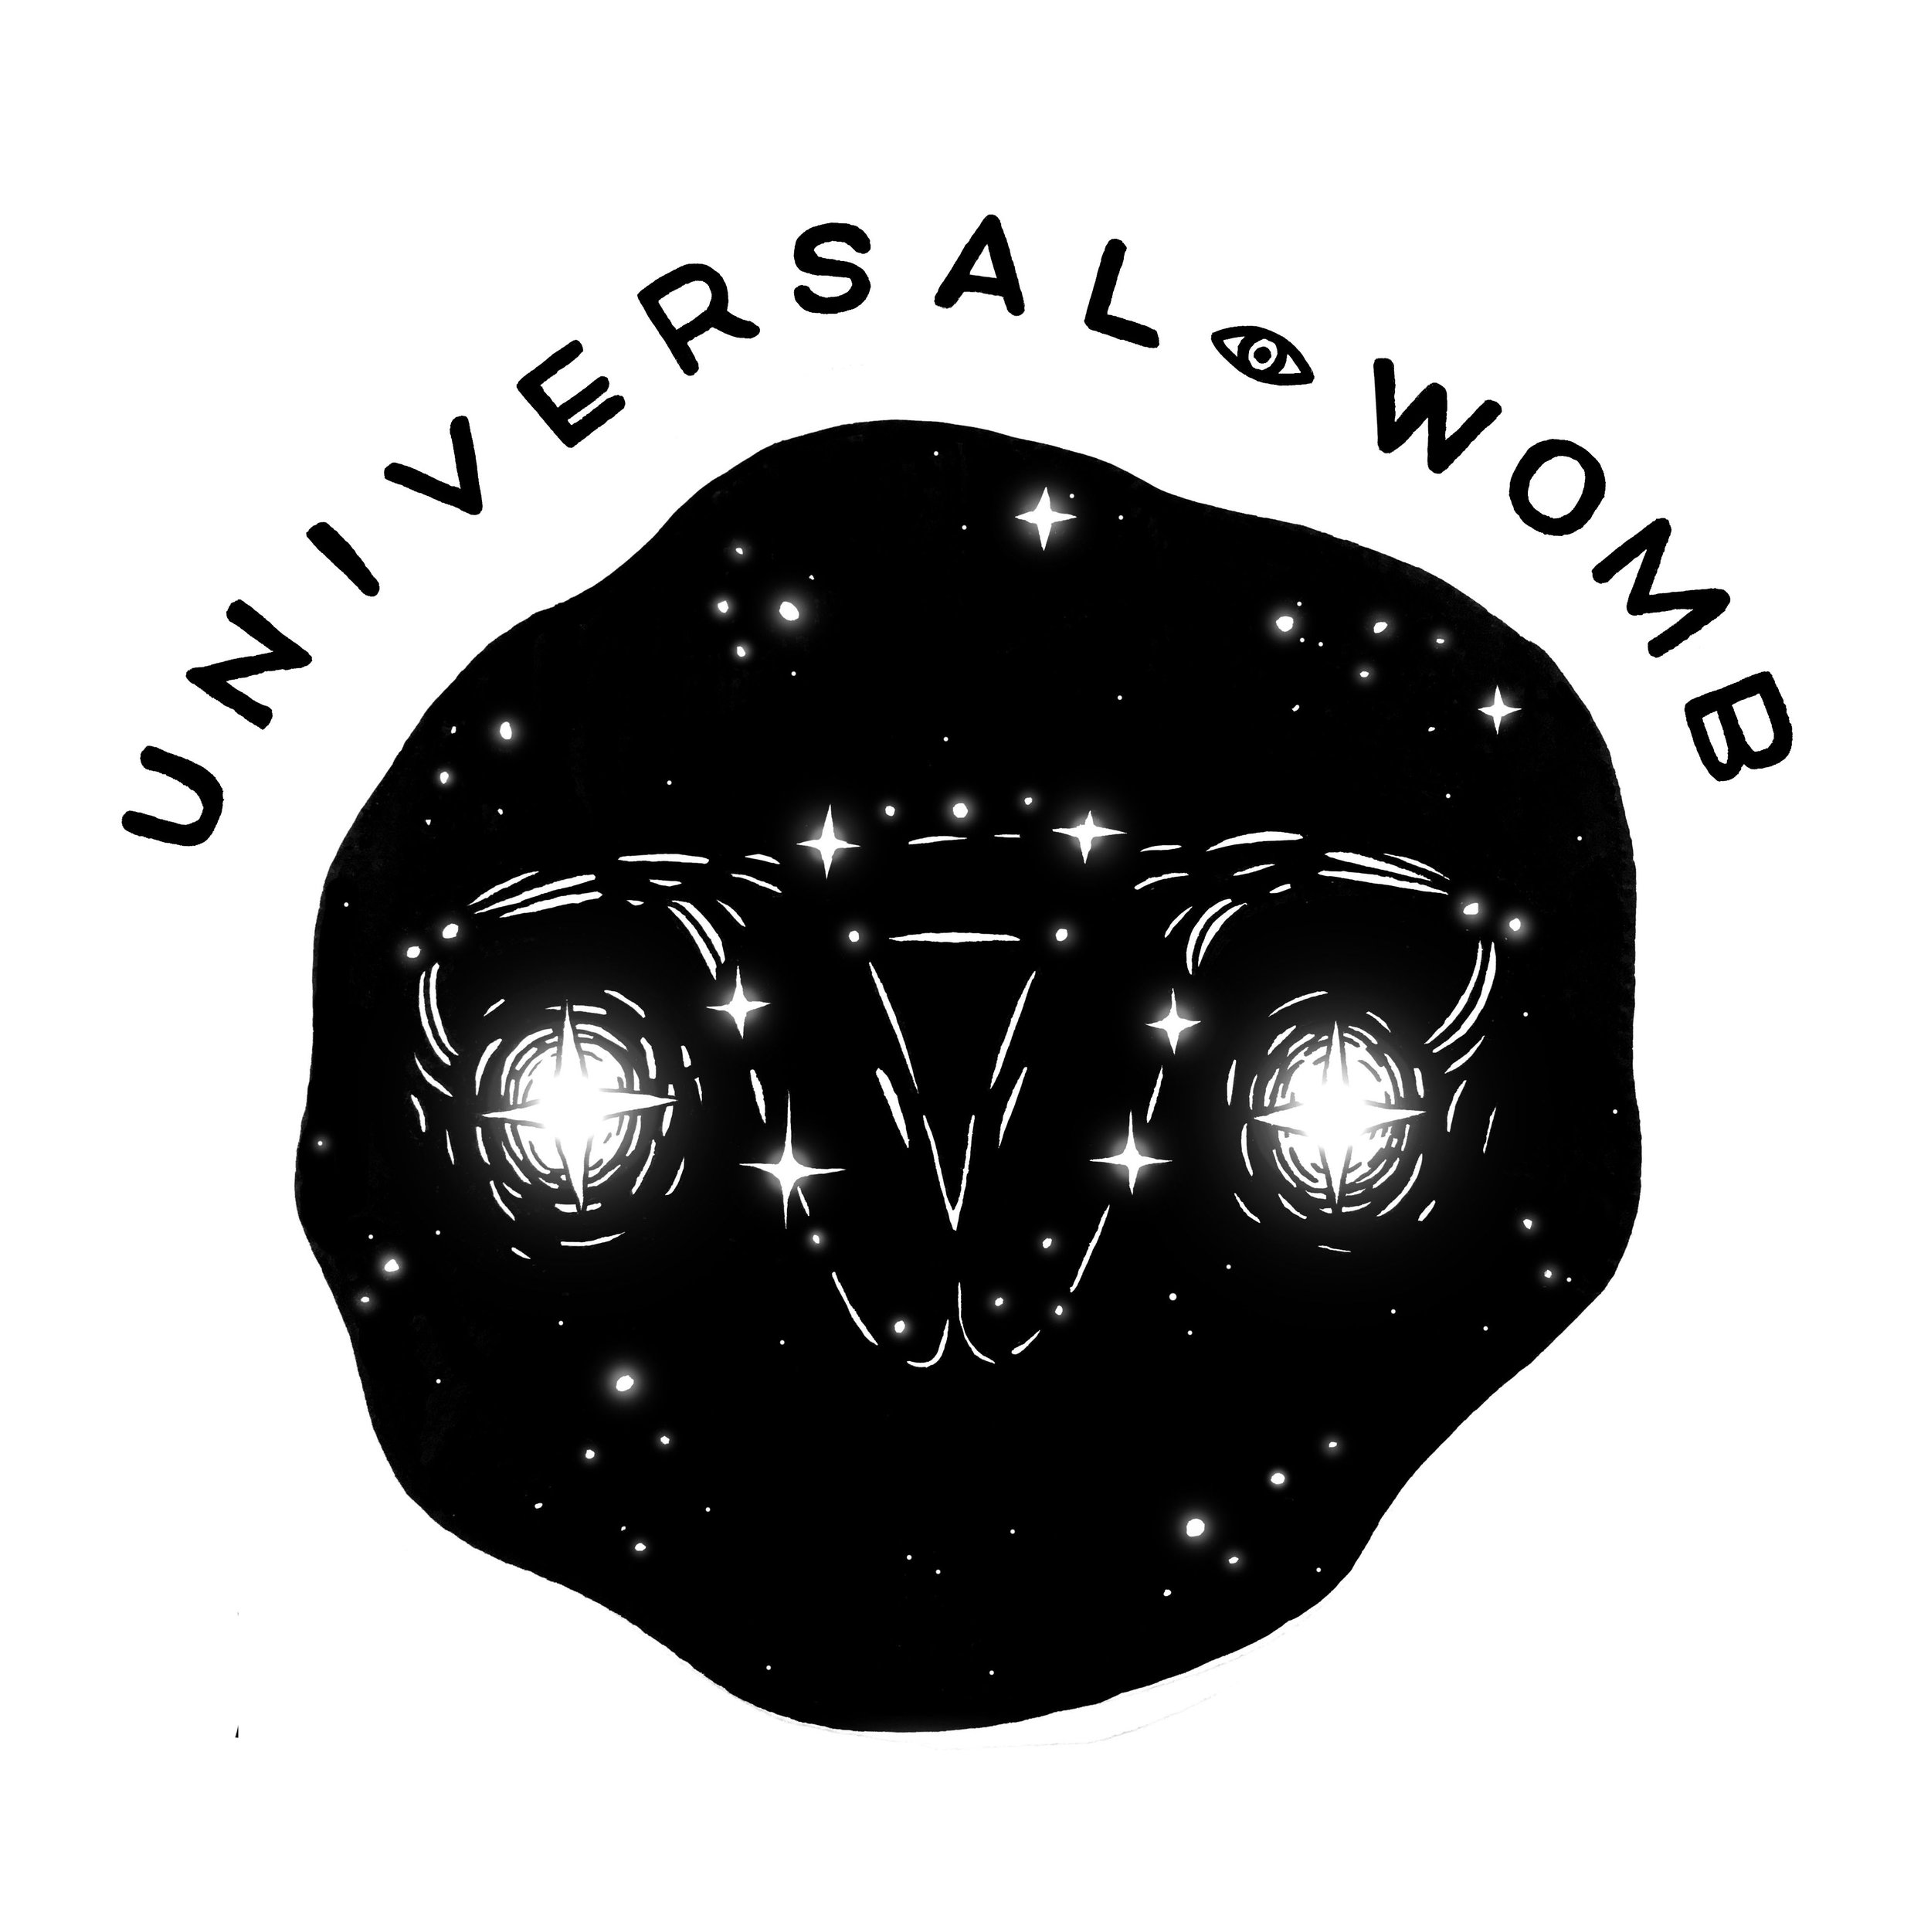 Universal Womb (with Text).jpg